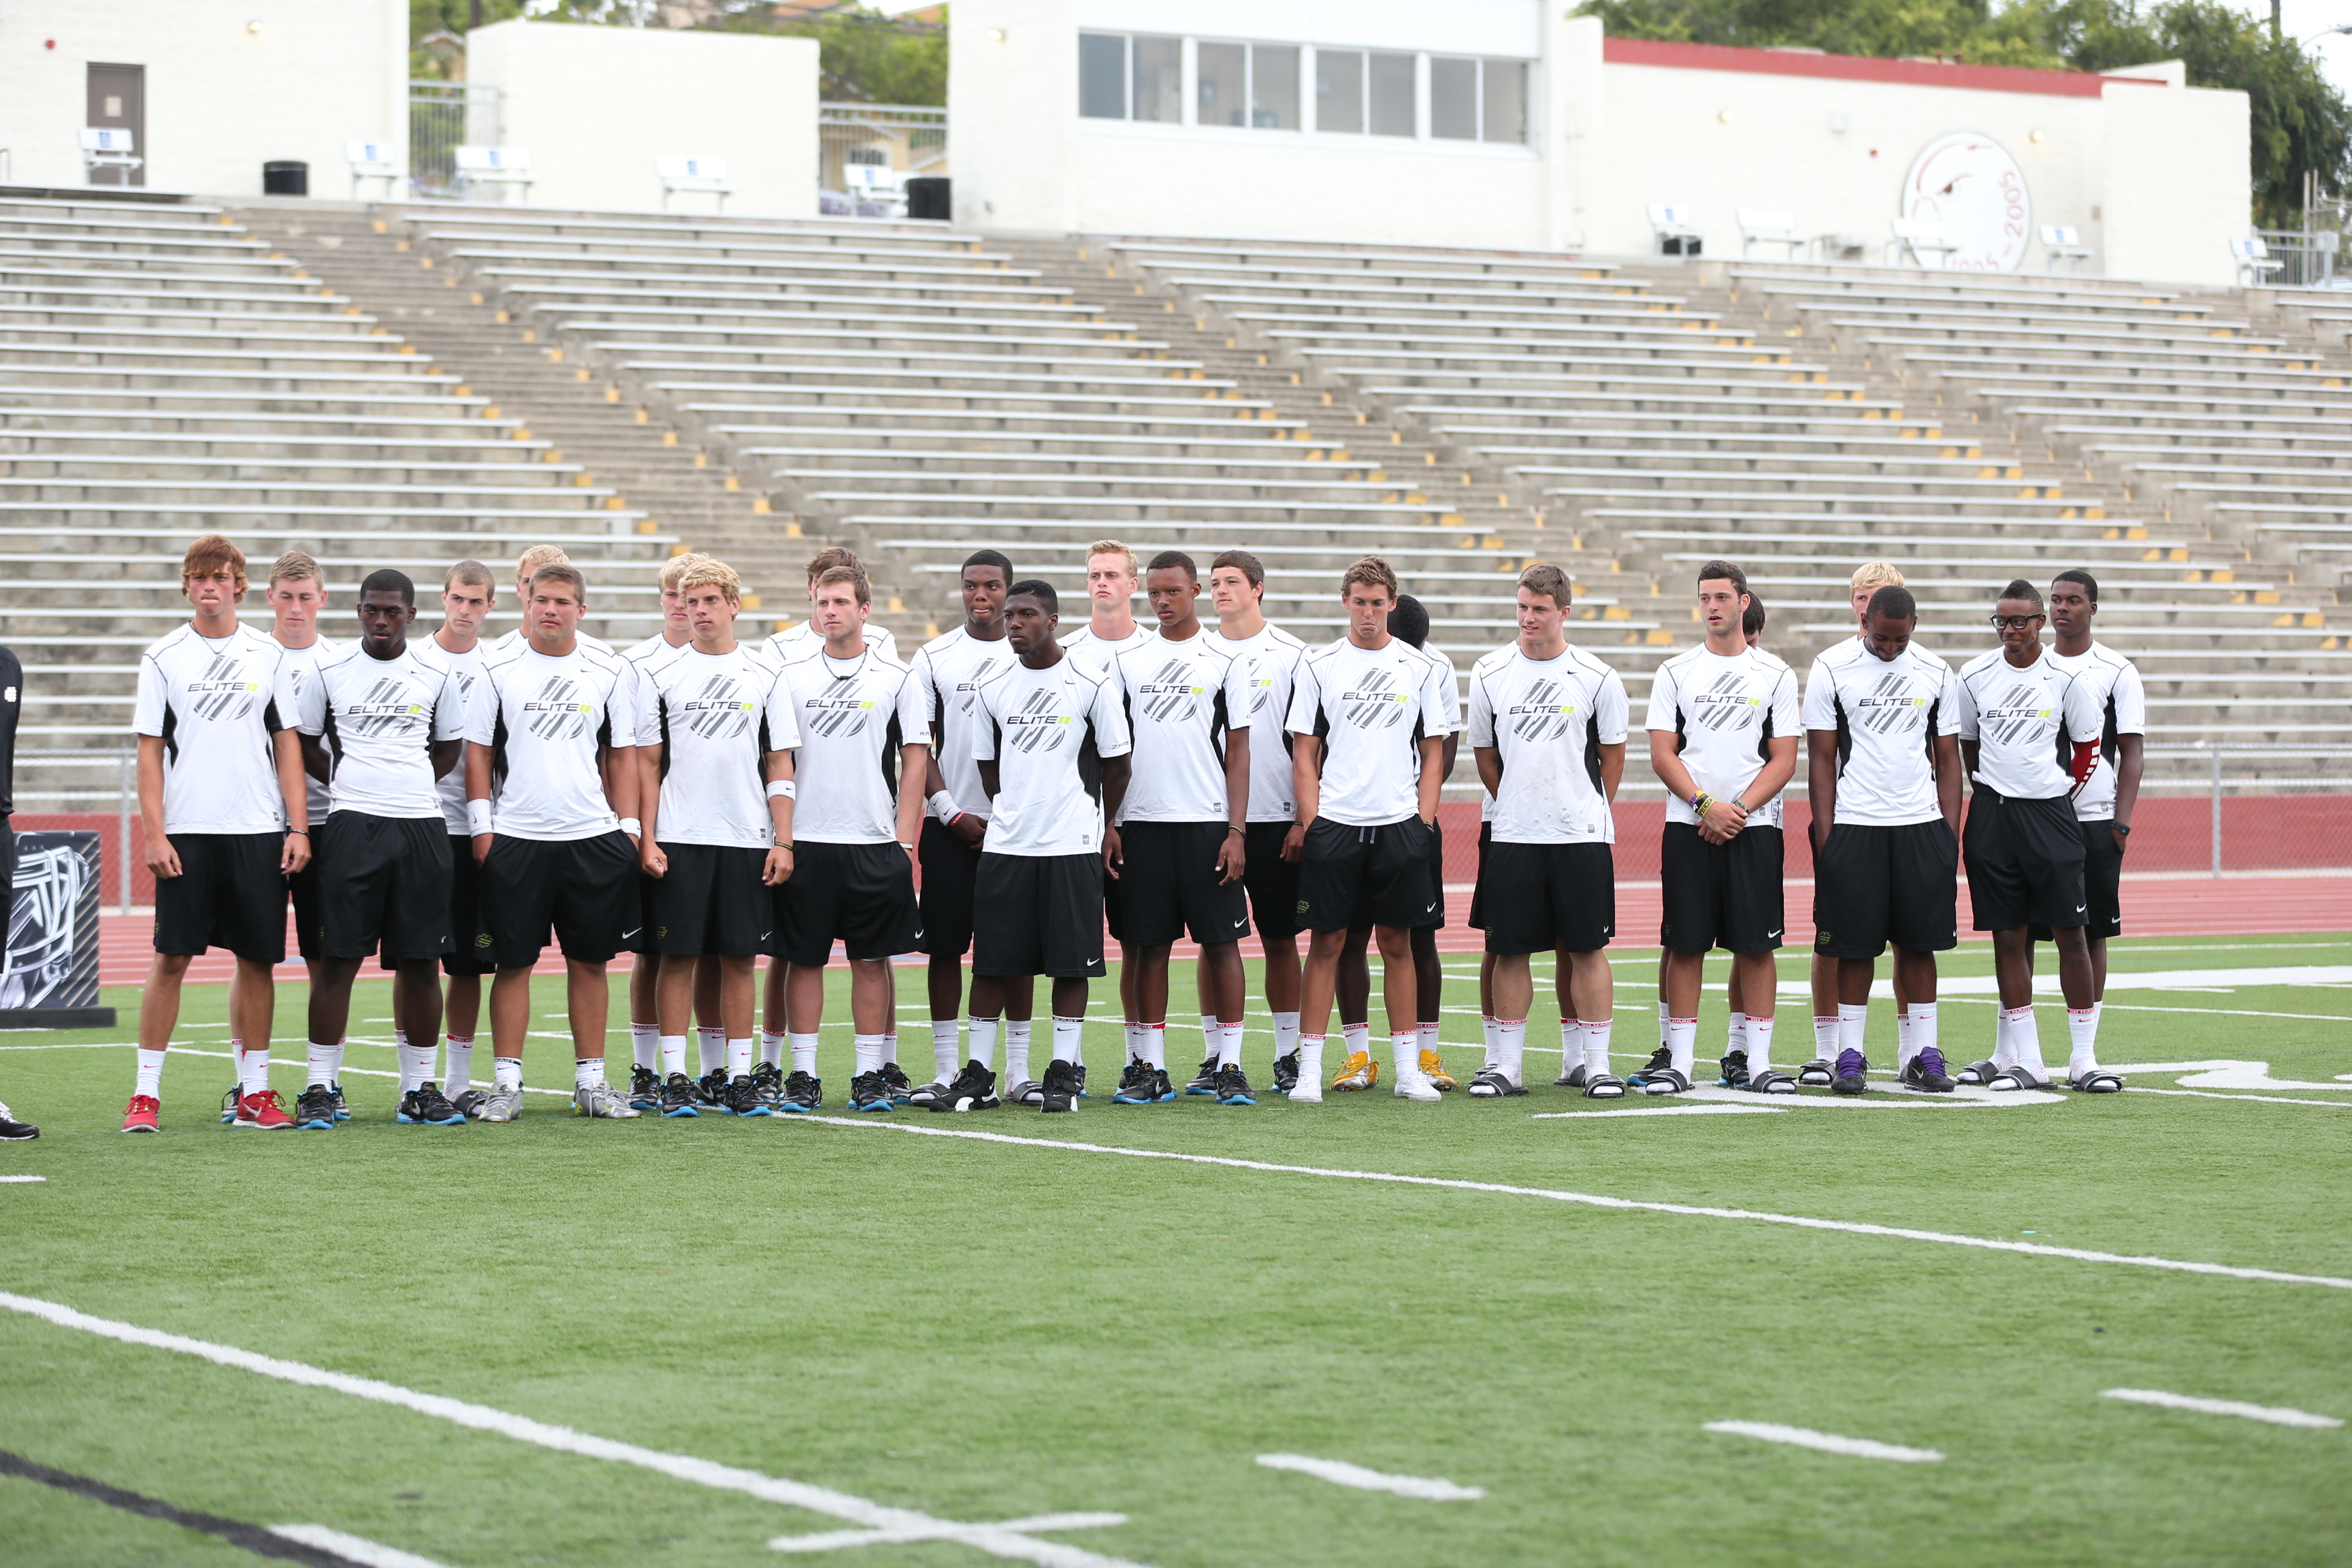 Elite 11 Group - Final Ceremonies